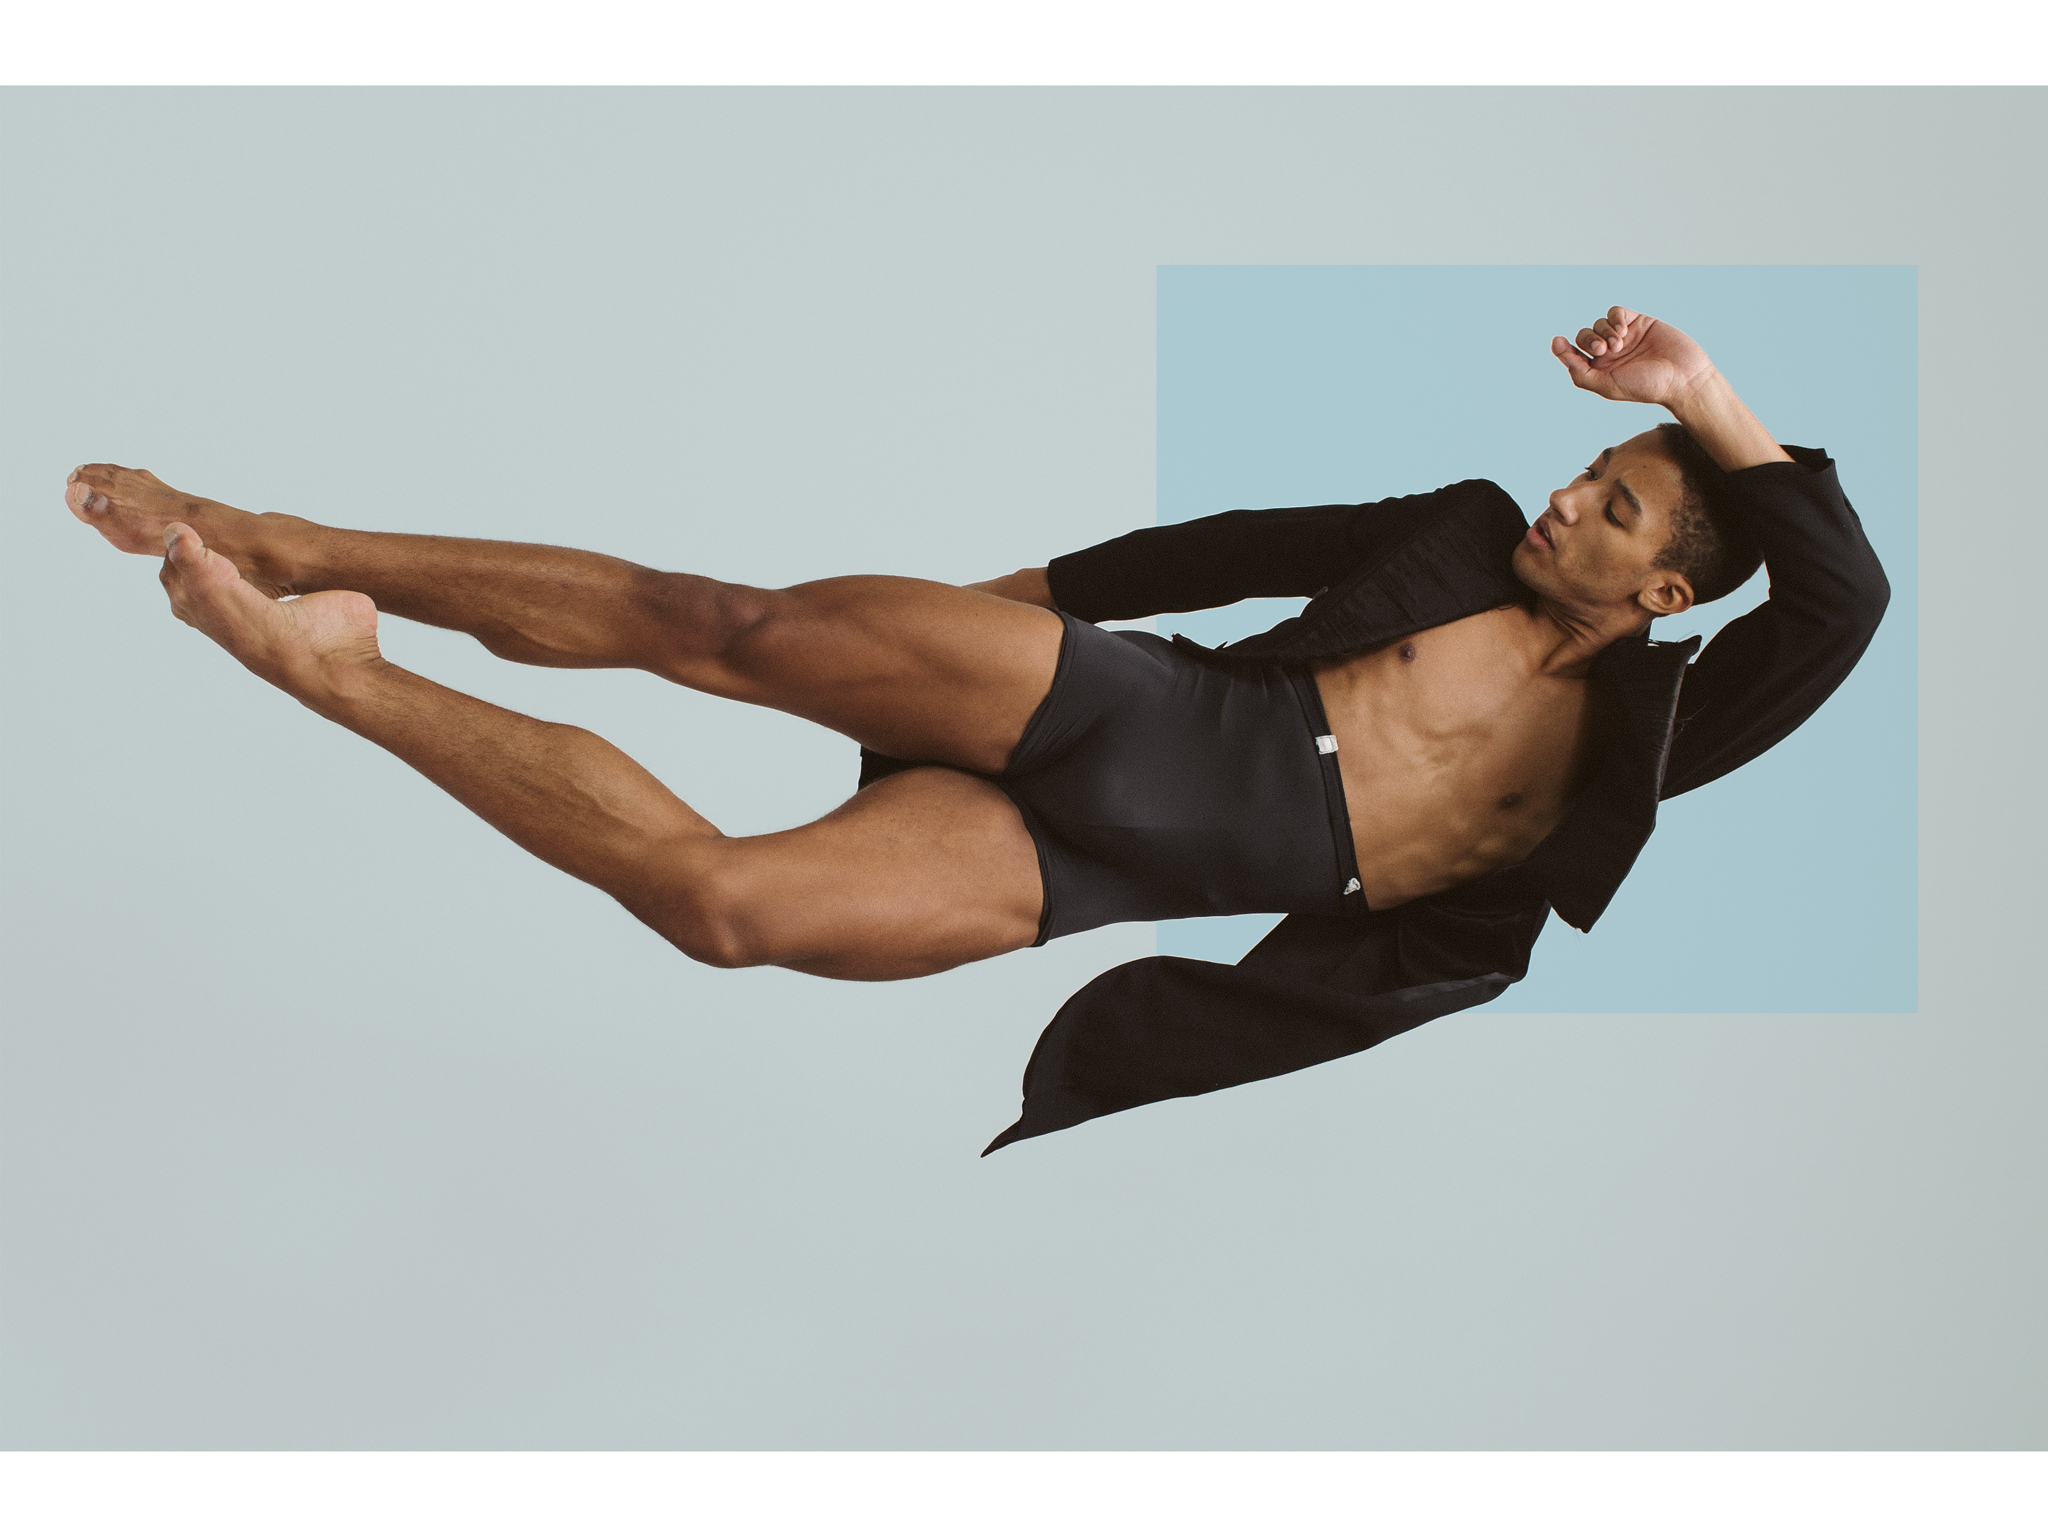 ballerina, Ballet, ballet instagram, ballet podcast, Conversations on Dance, dance podcast, danseur, Featured, harper watters, harper watters instagram, houston ballet, male ballet dancer, Miami City Ballet, Michael Sean Breeden, rebecca king ferraro, Social Media, soloist